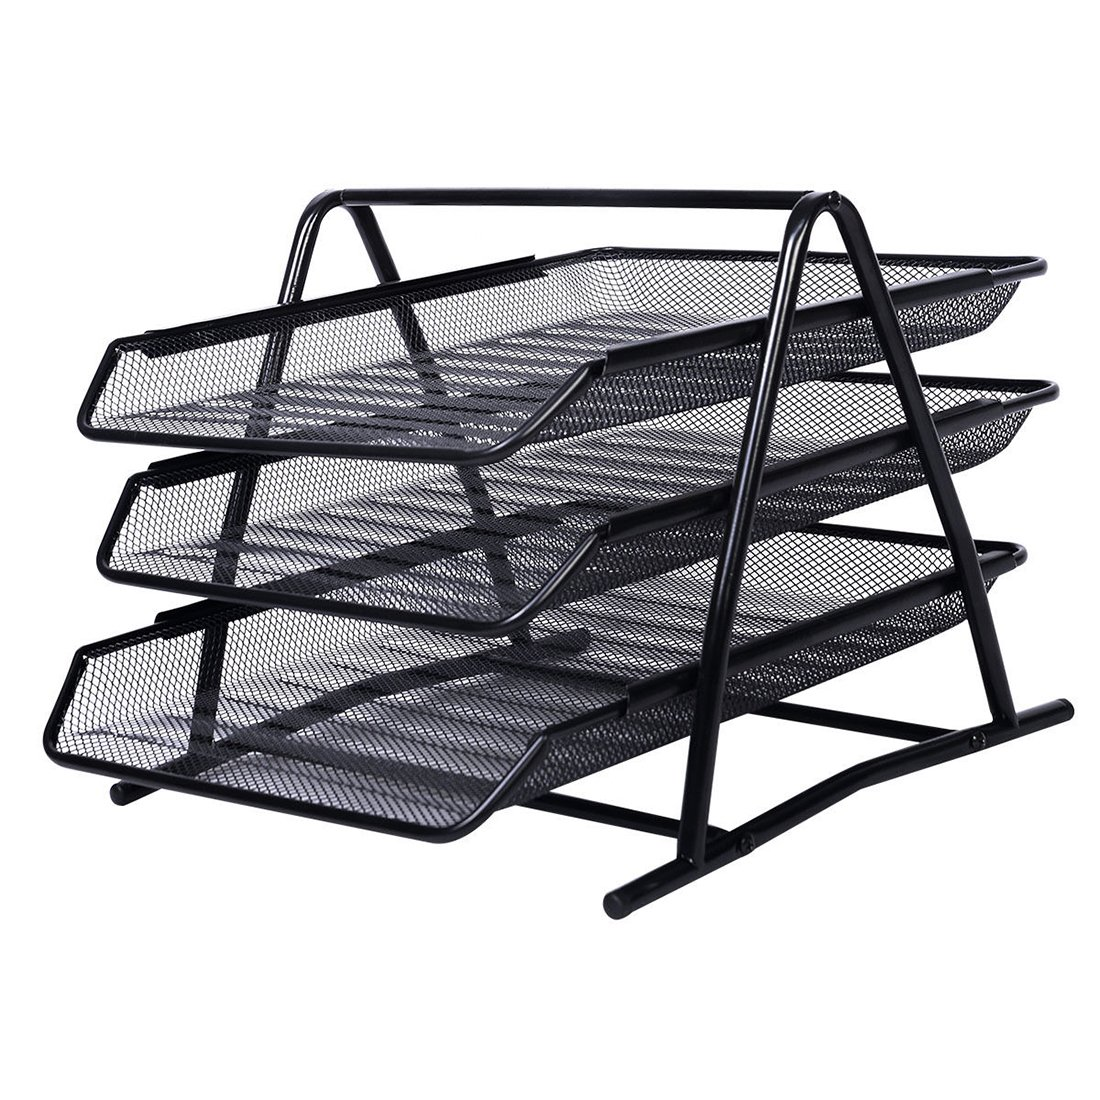 1 Pack Office 3 Tier Heavy Duty Metal Desktop Letter Tray l Document Organizer Tray l Magazine Holder l Paper File Newspaper Organizer Tray kkl456456454